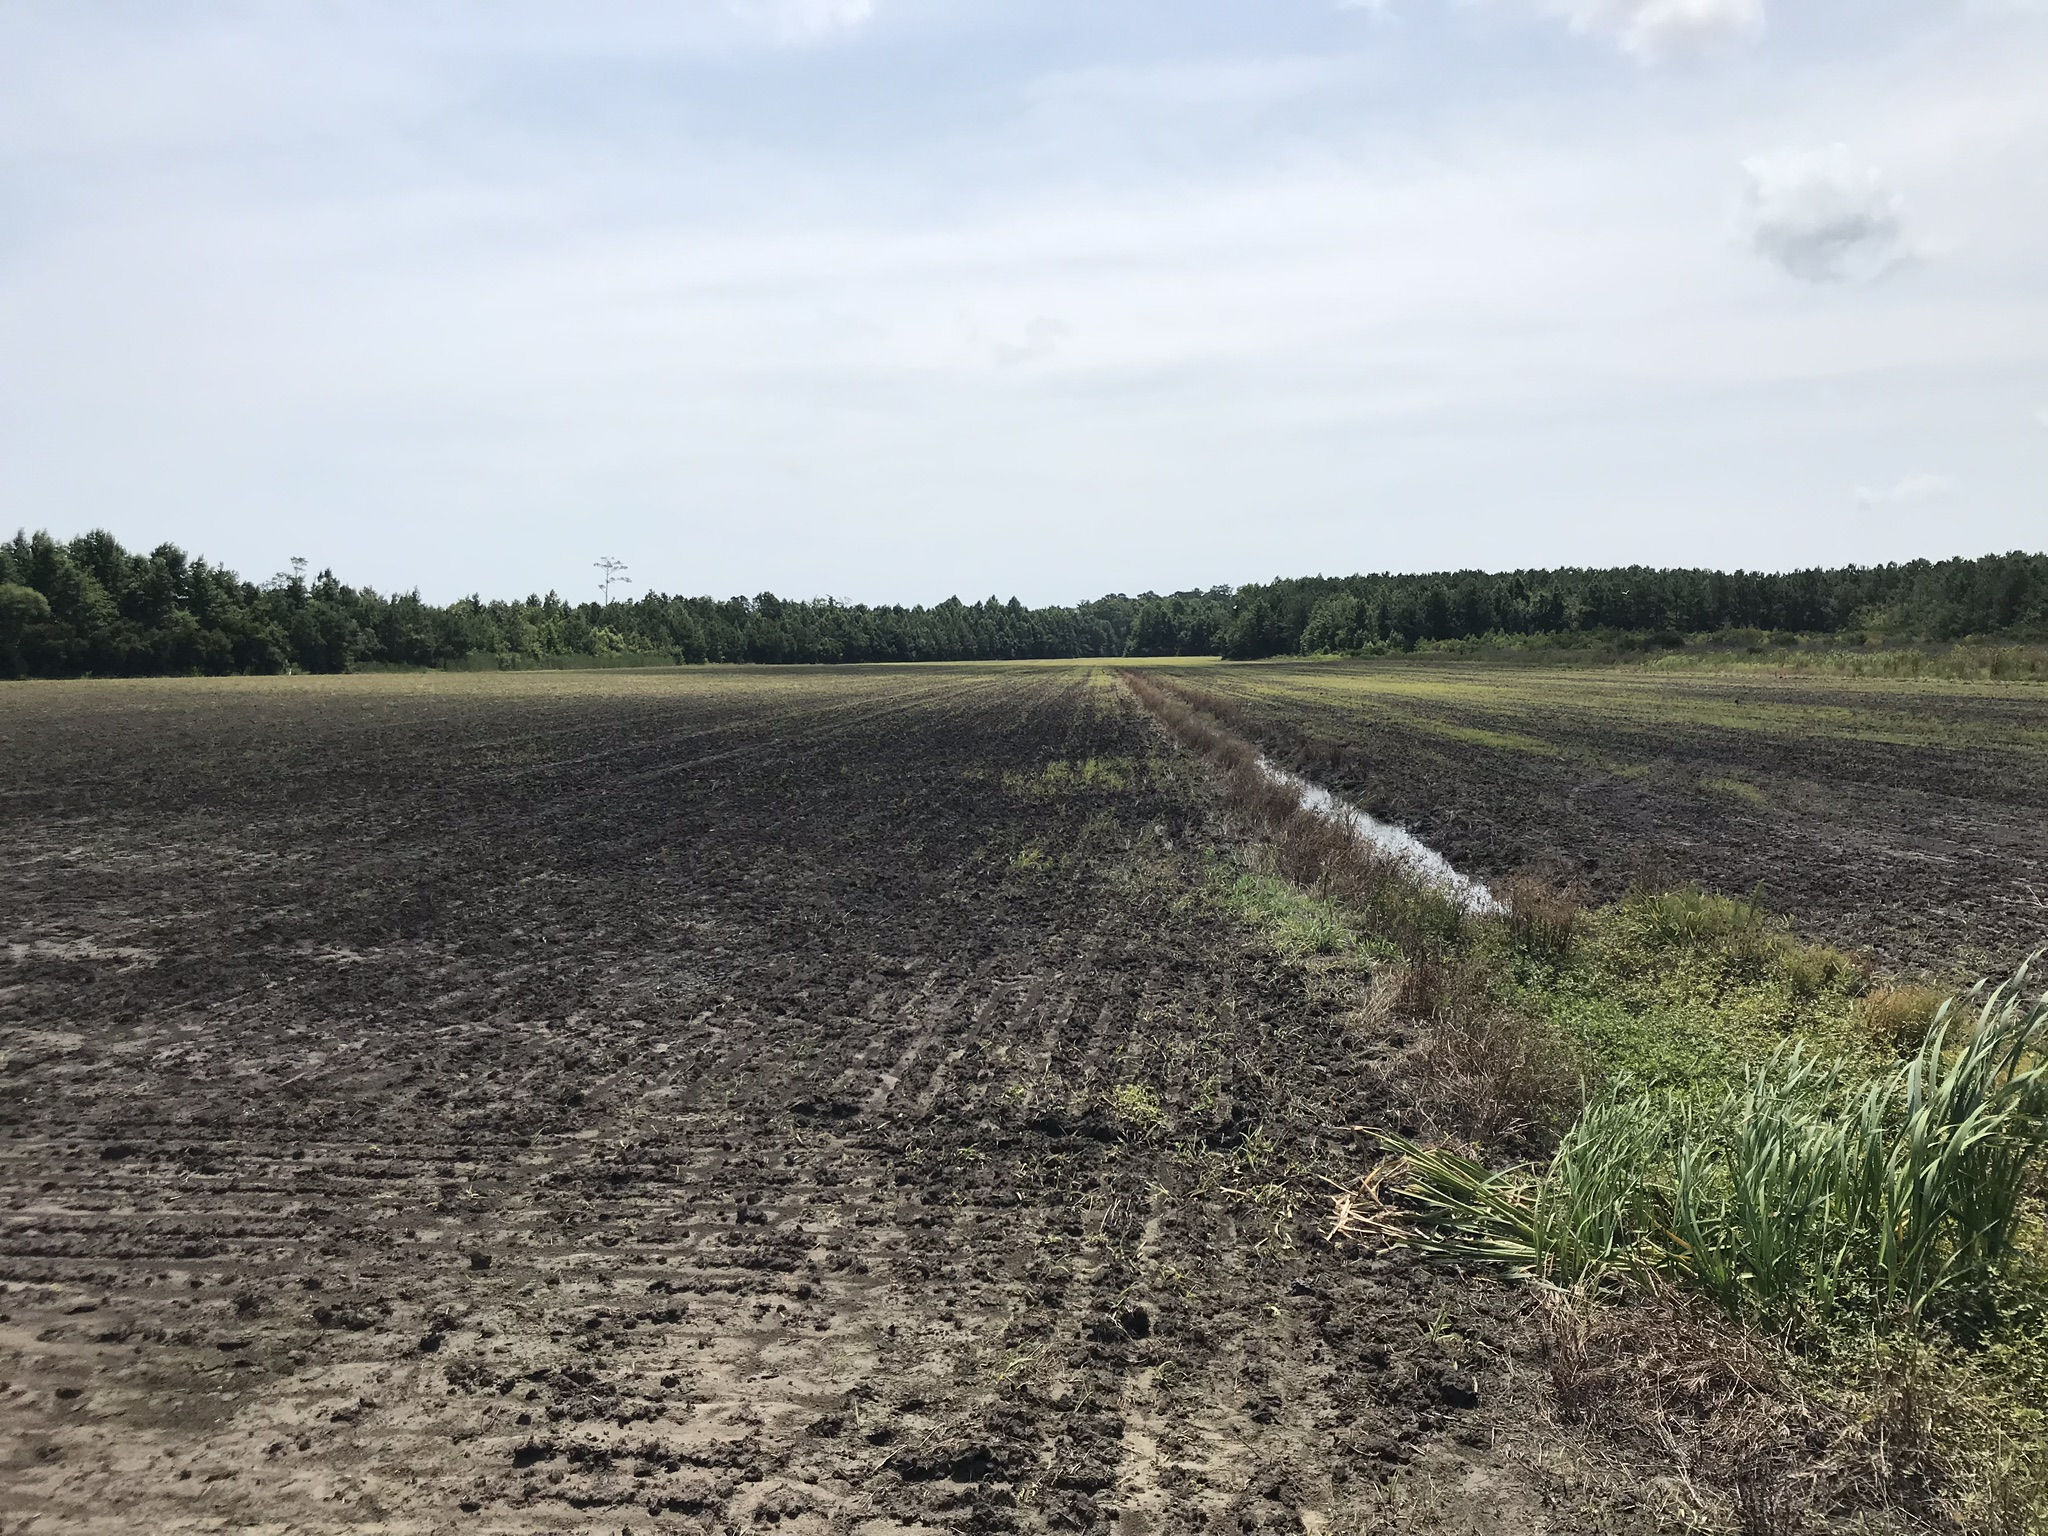 Land For Sale - Farm, Timber & Prime Hunting Land 334 acres | The